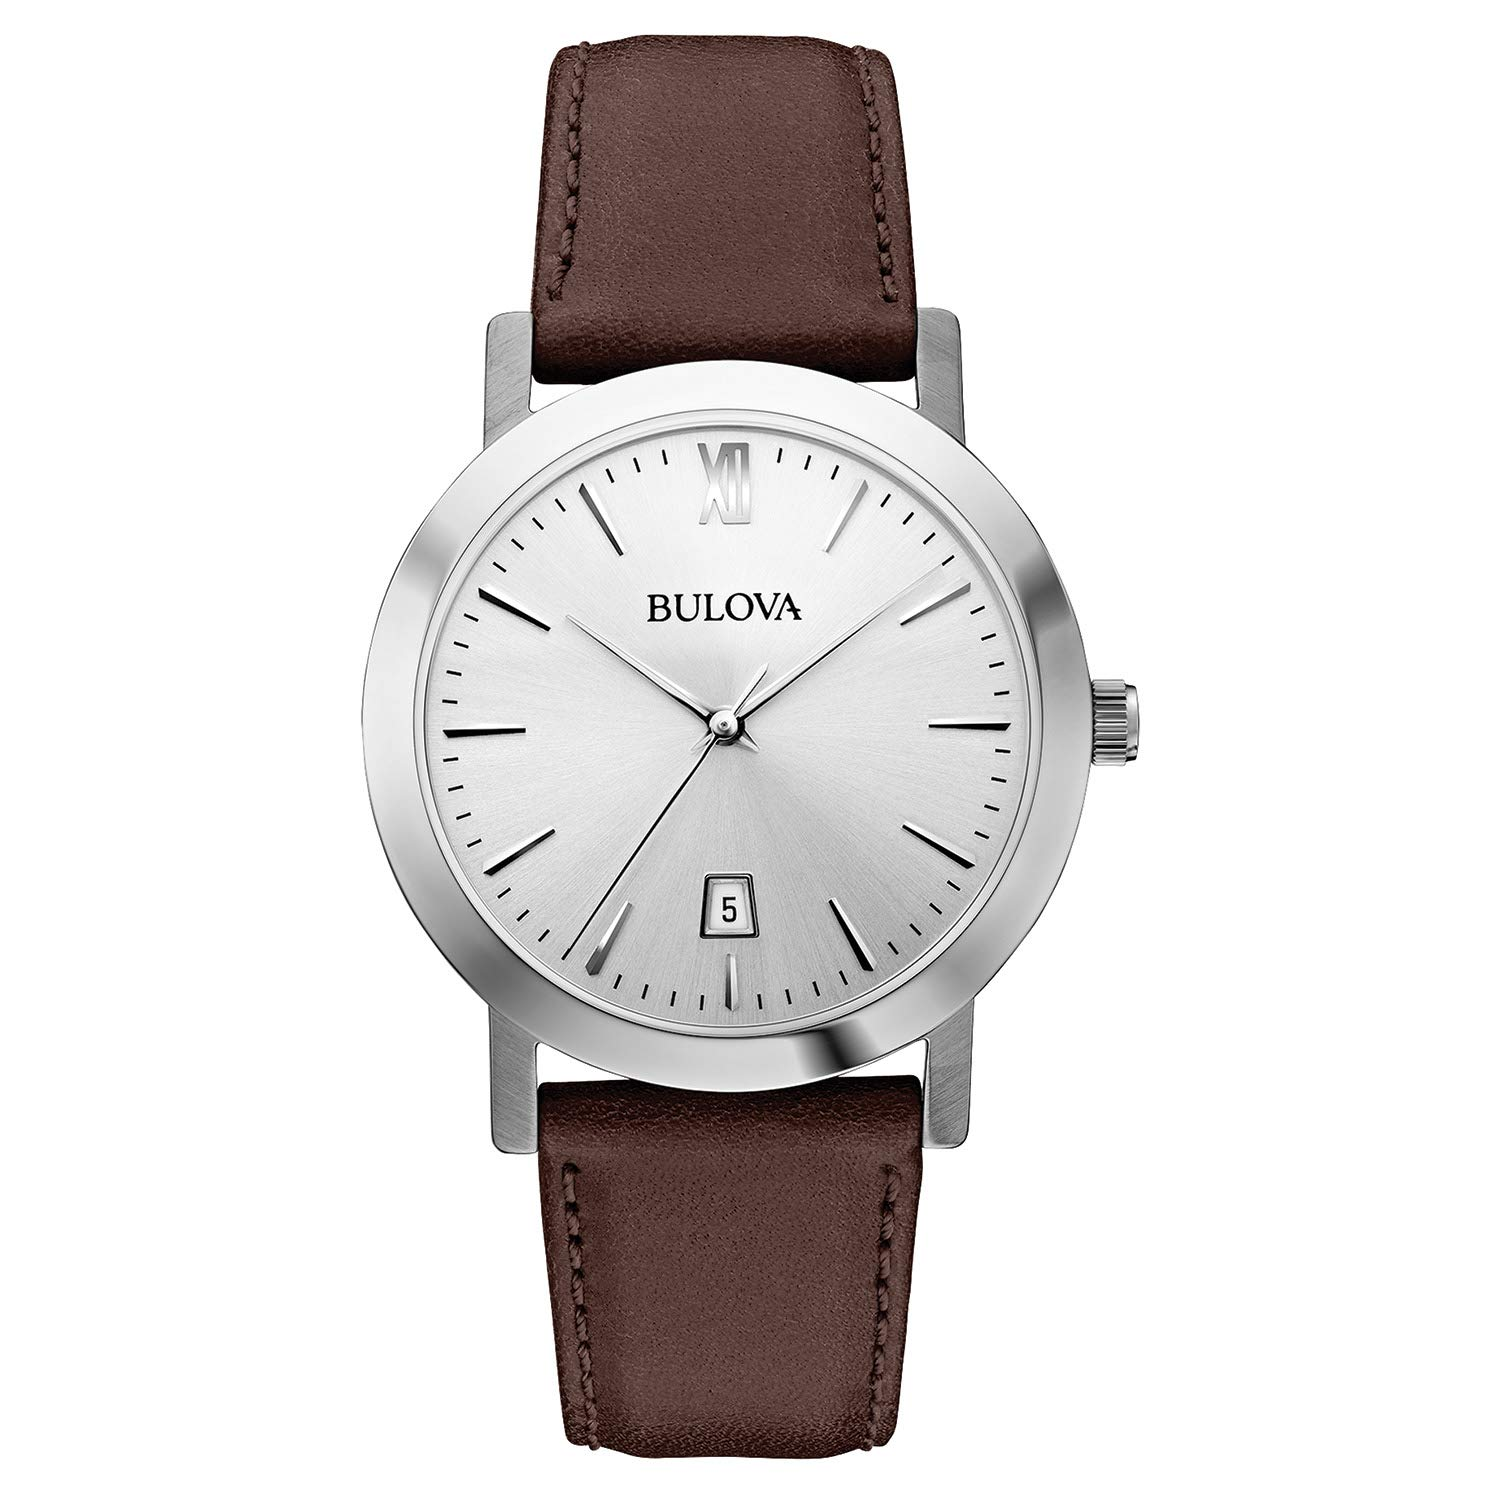 1c7abd275 Bulova Unisex 96B217 Stainless Steel Watch with Brown Leather Band |  Amazon.com